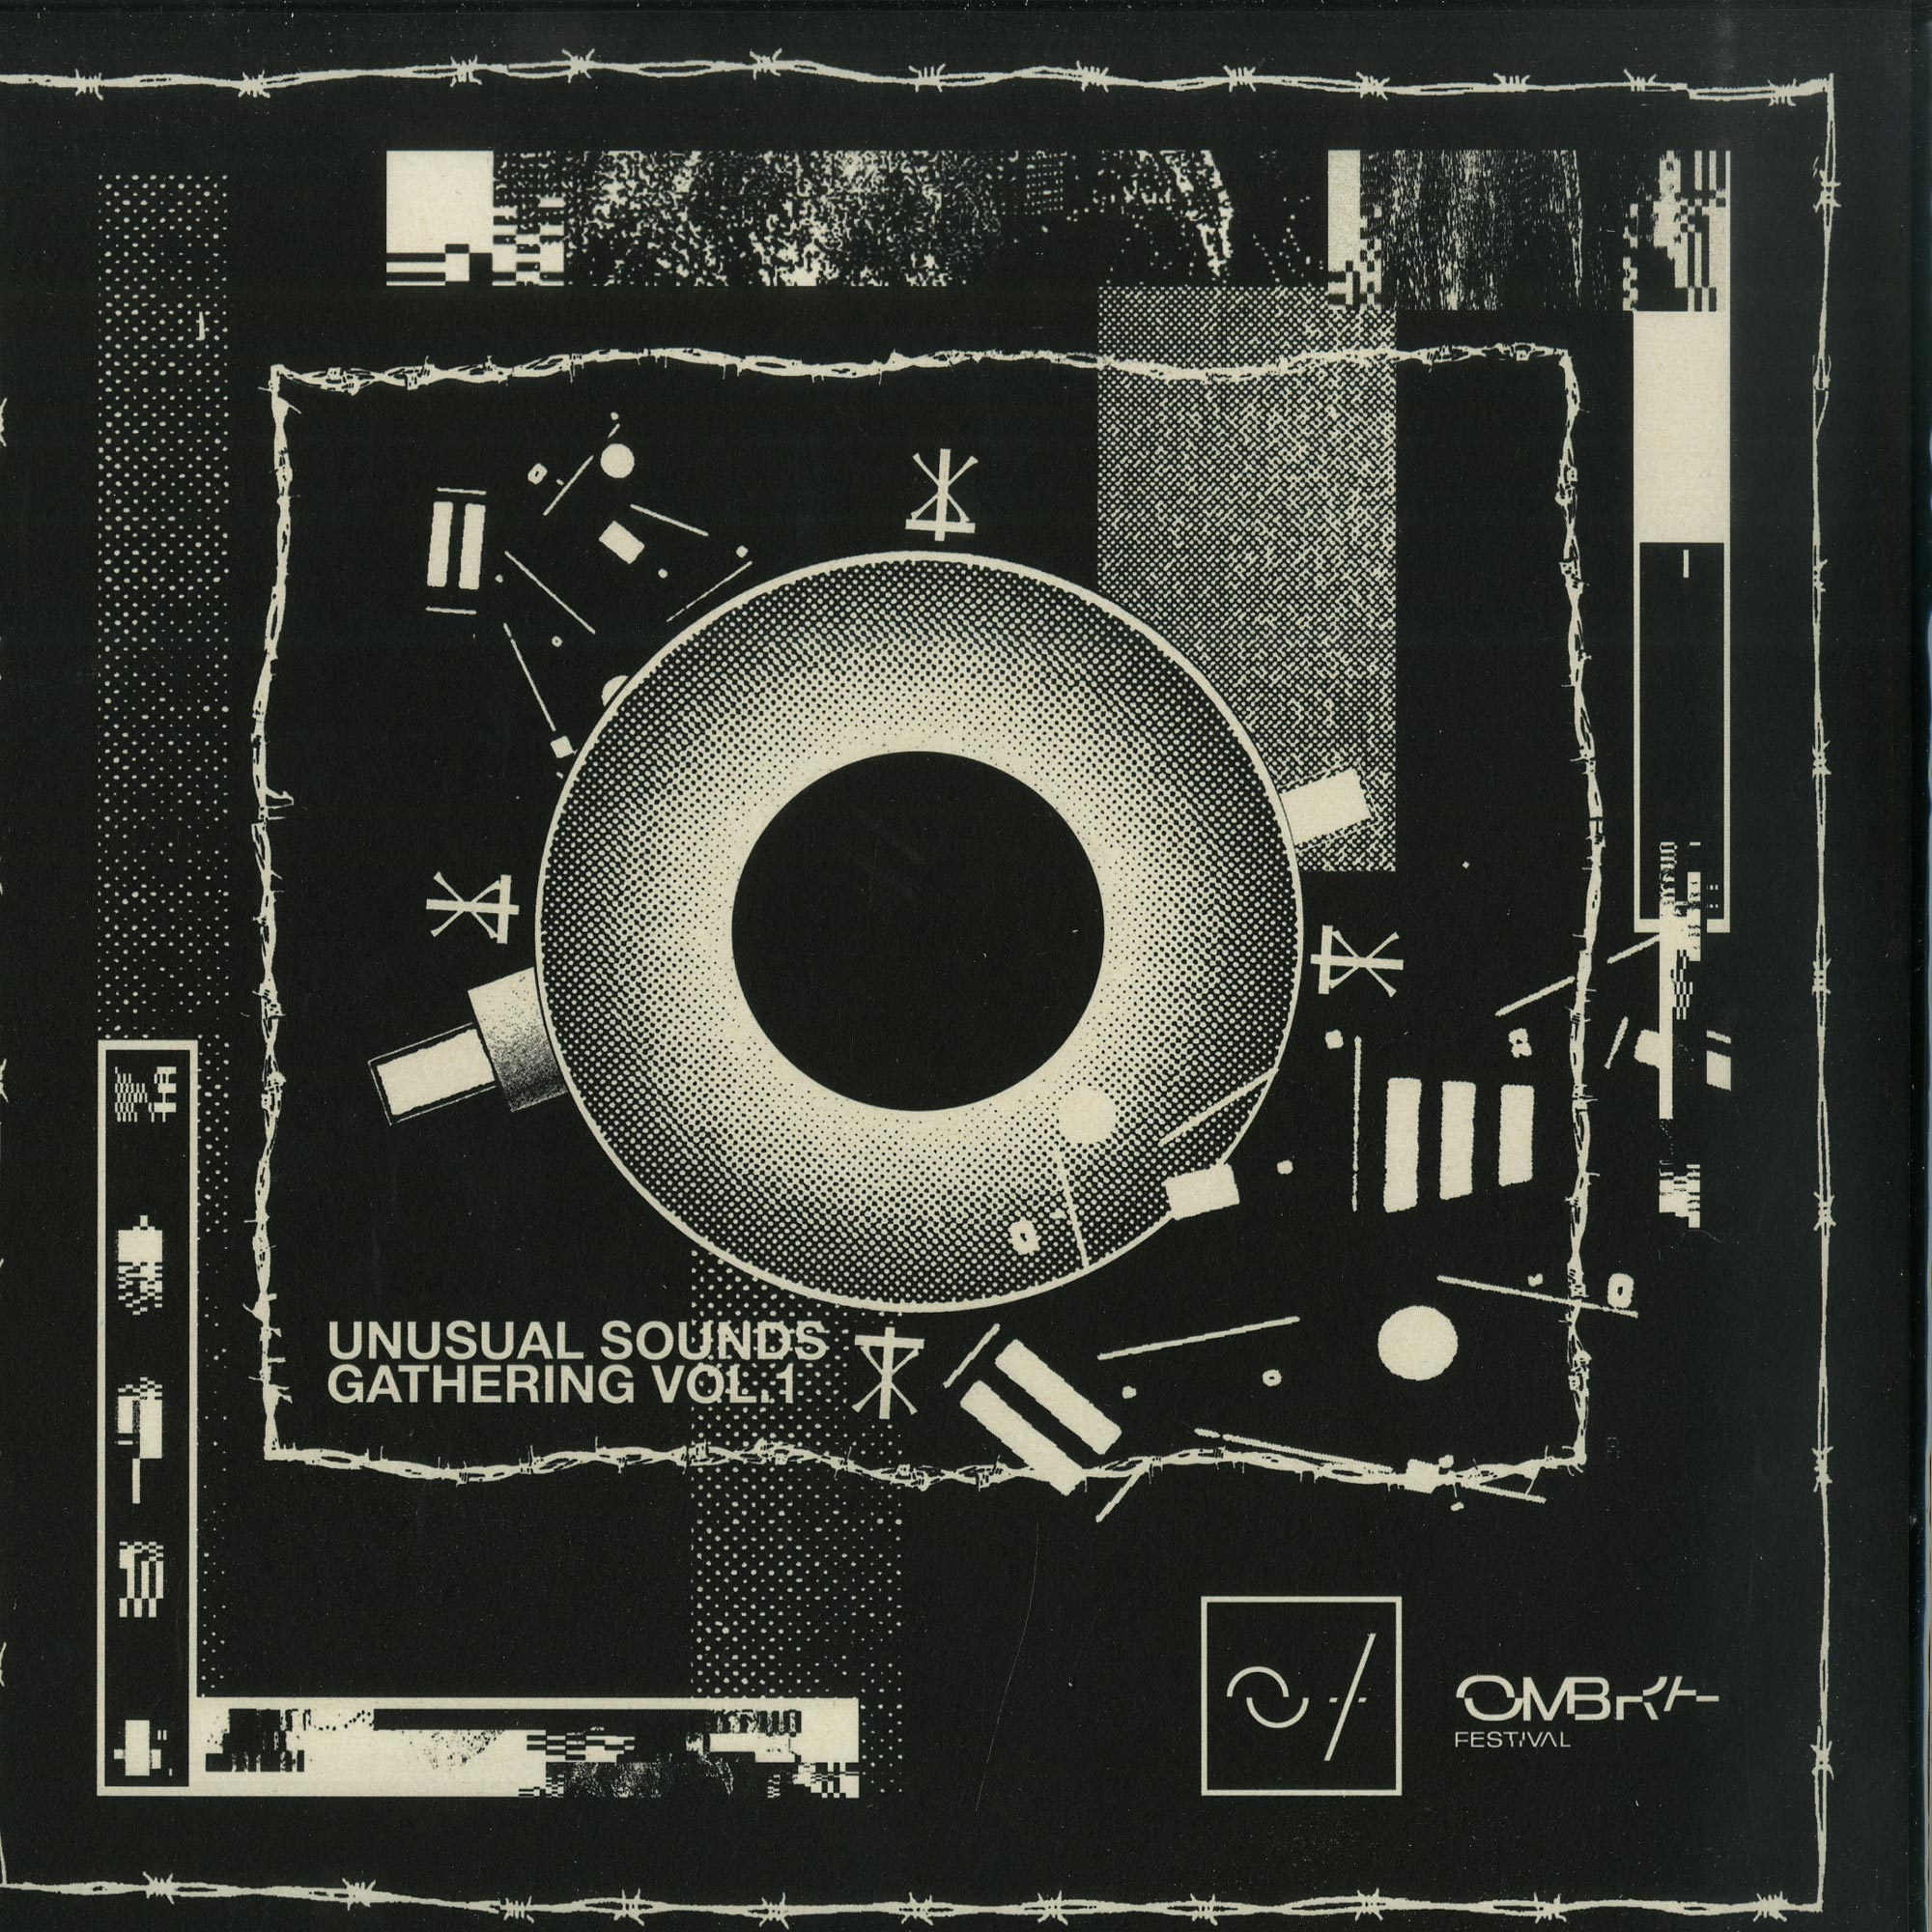 Various Artists - OMBRA FESTIVAL / UNUSUAL SOUNDS GATHERING VOL. 1 EP